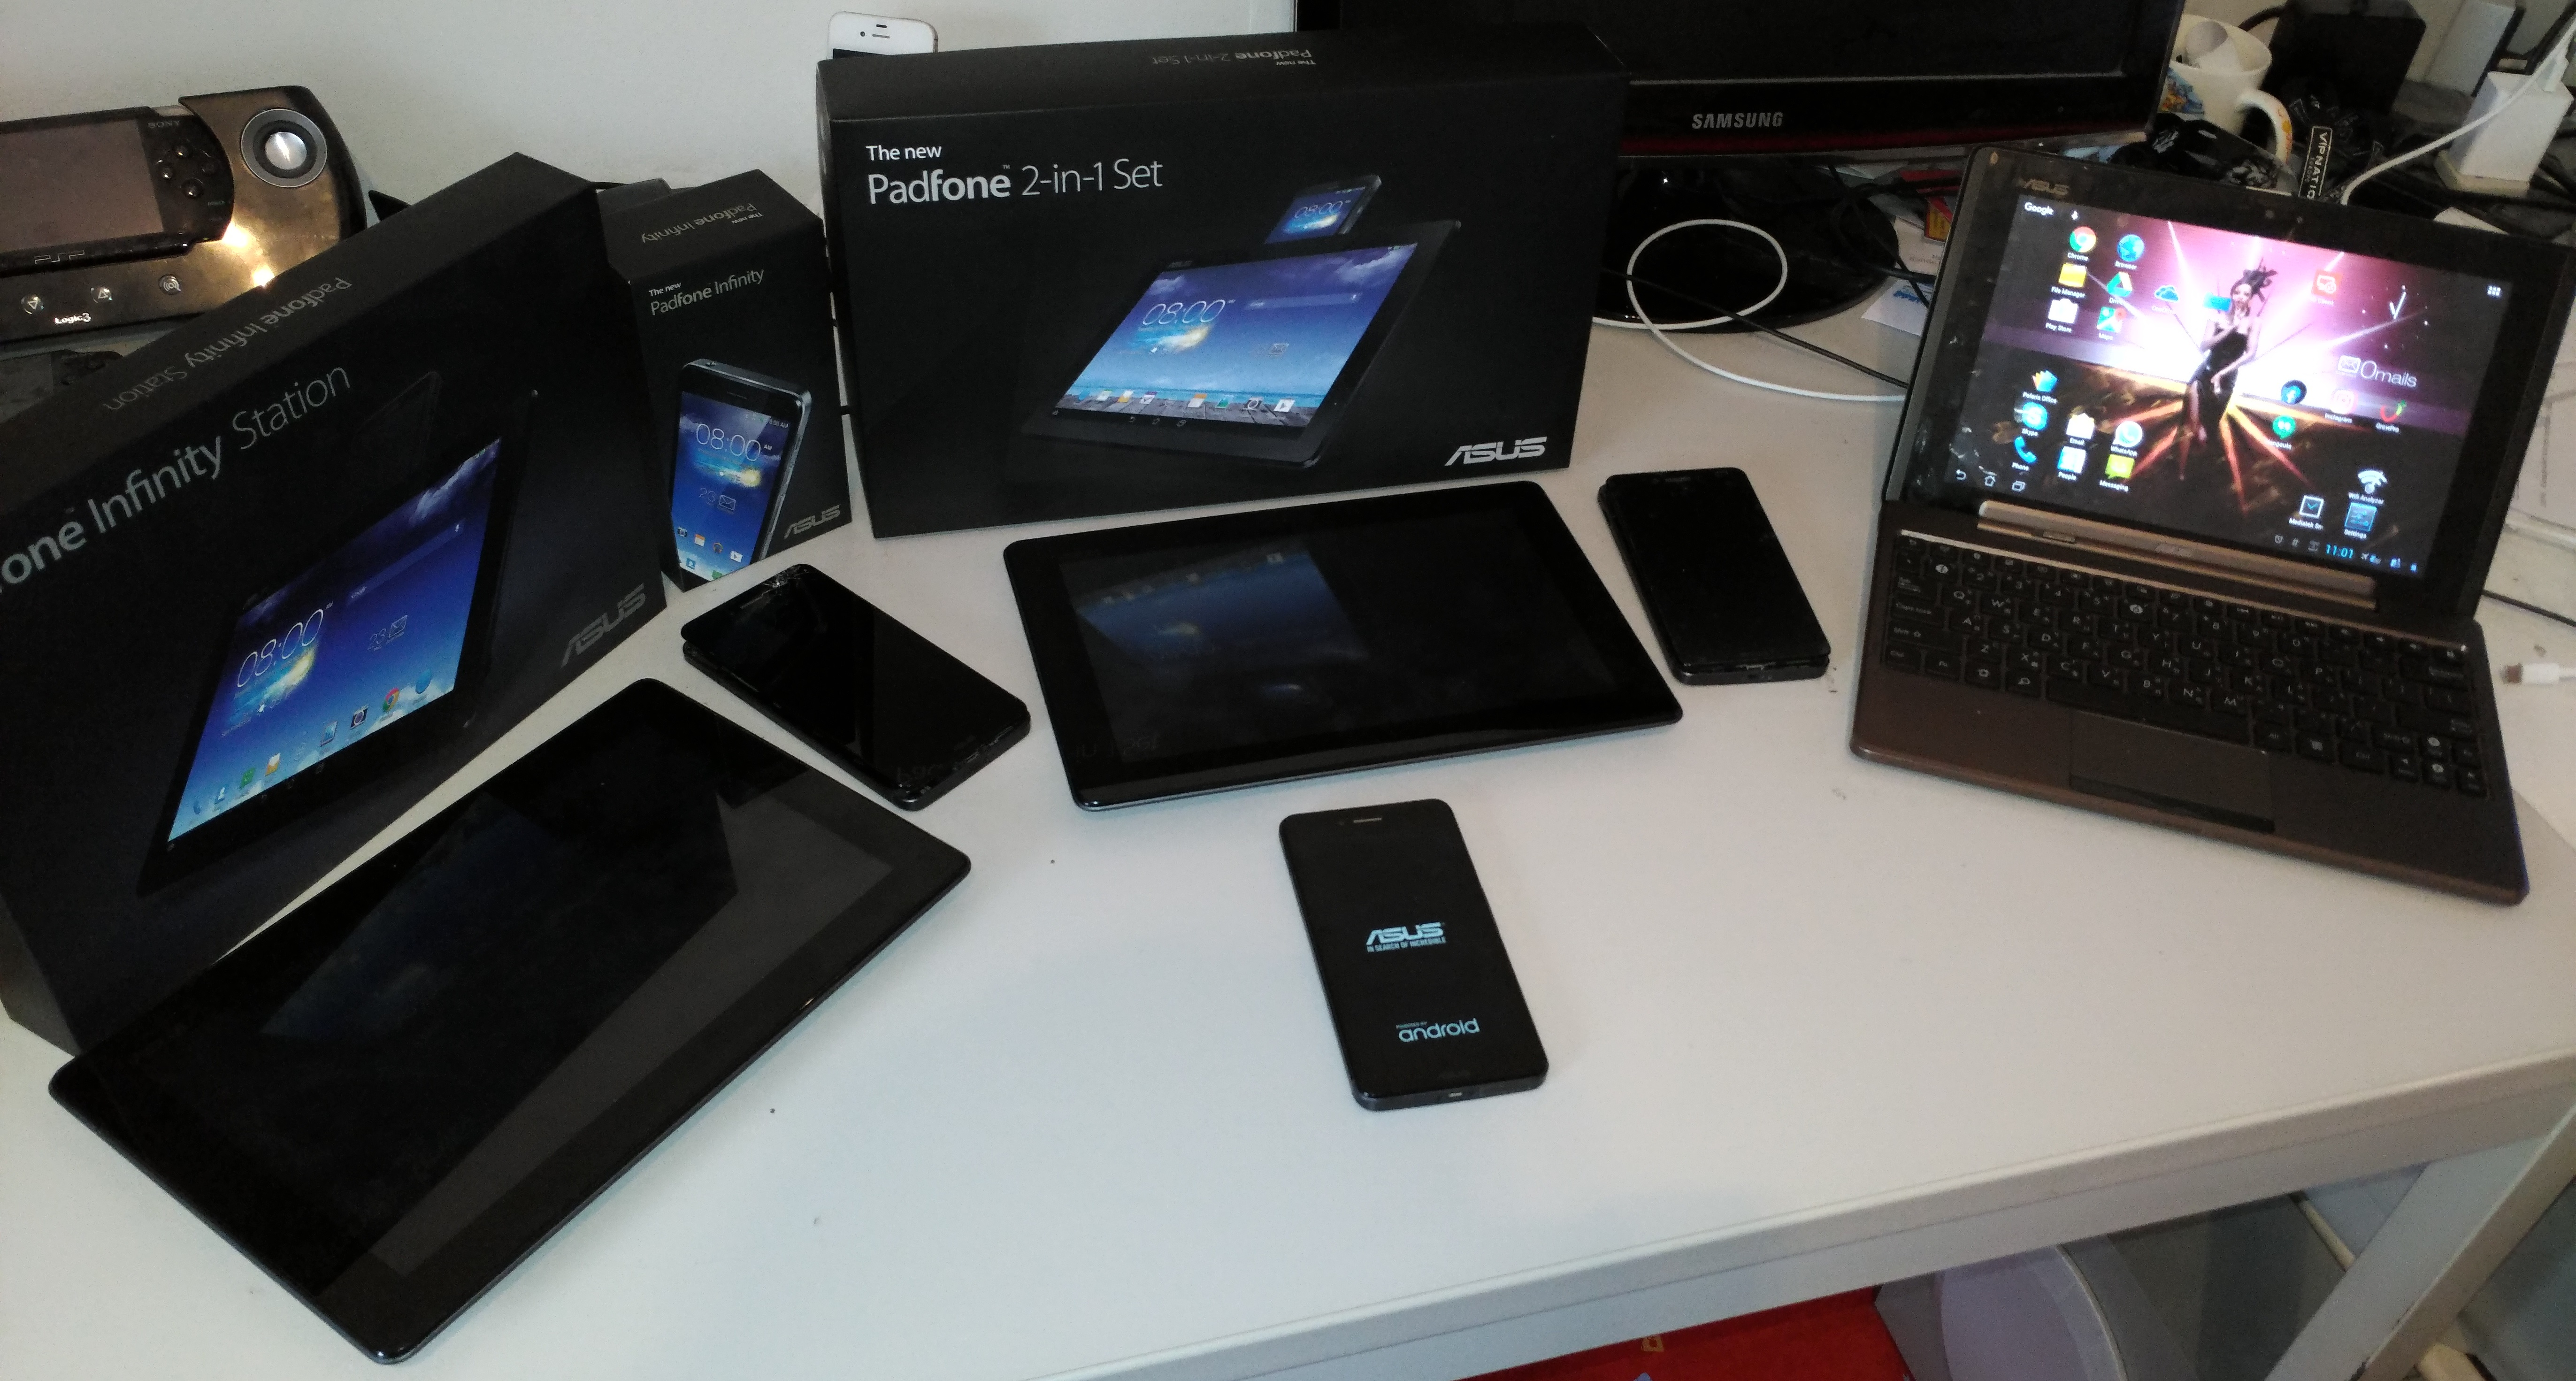 I started with the Padfone A66 Padfone Infinity A80 sample from Asus not on the photo and had 3 new Padfone Infinity A86 s which all 3 gave up on me